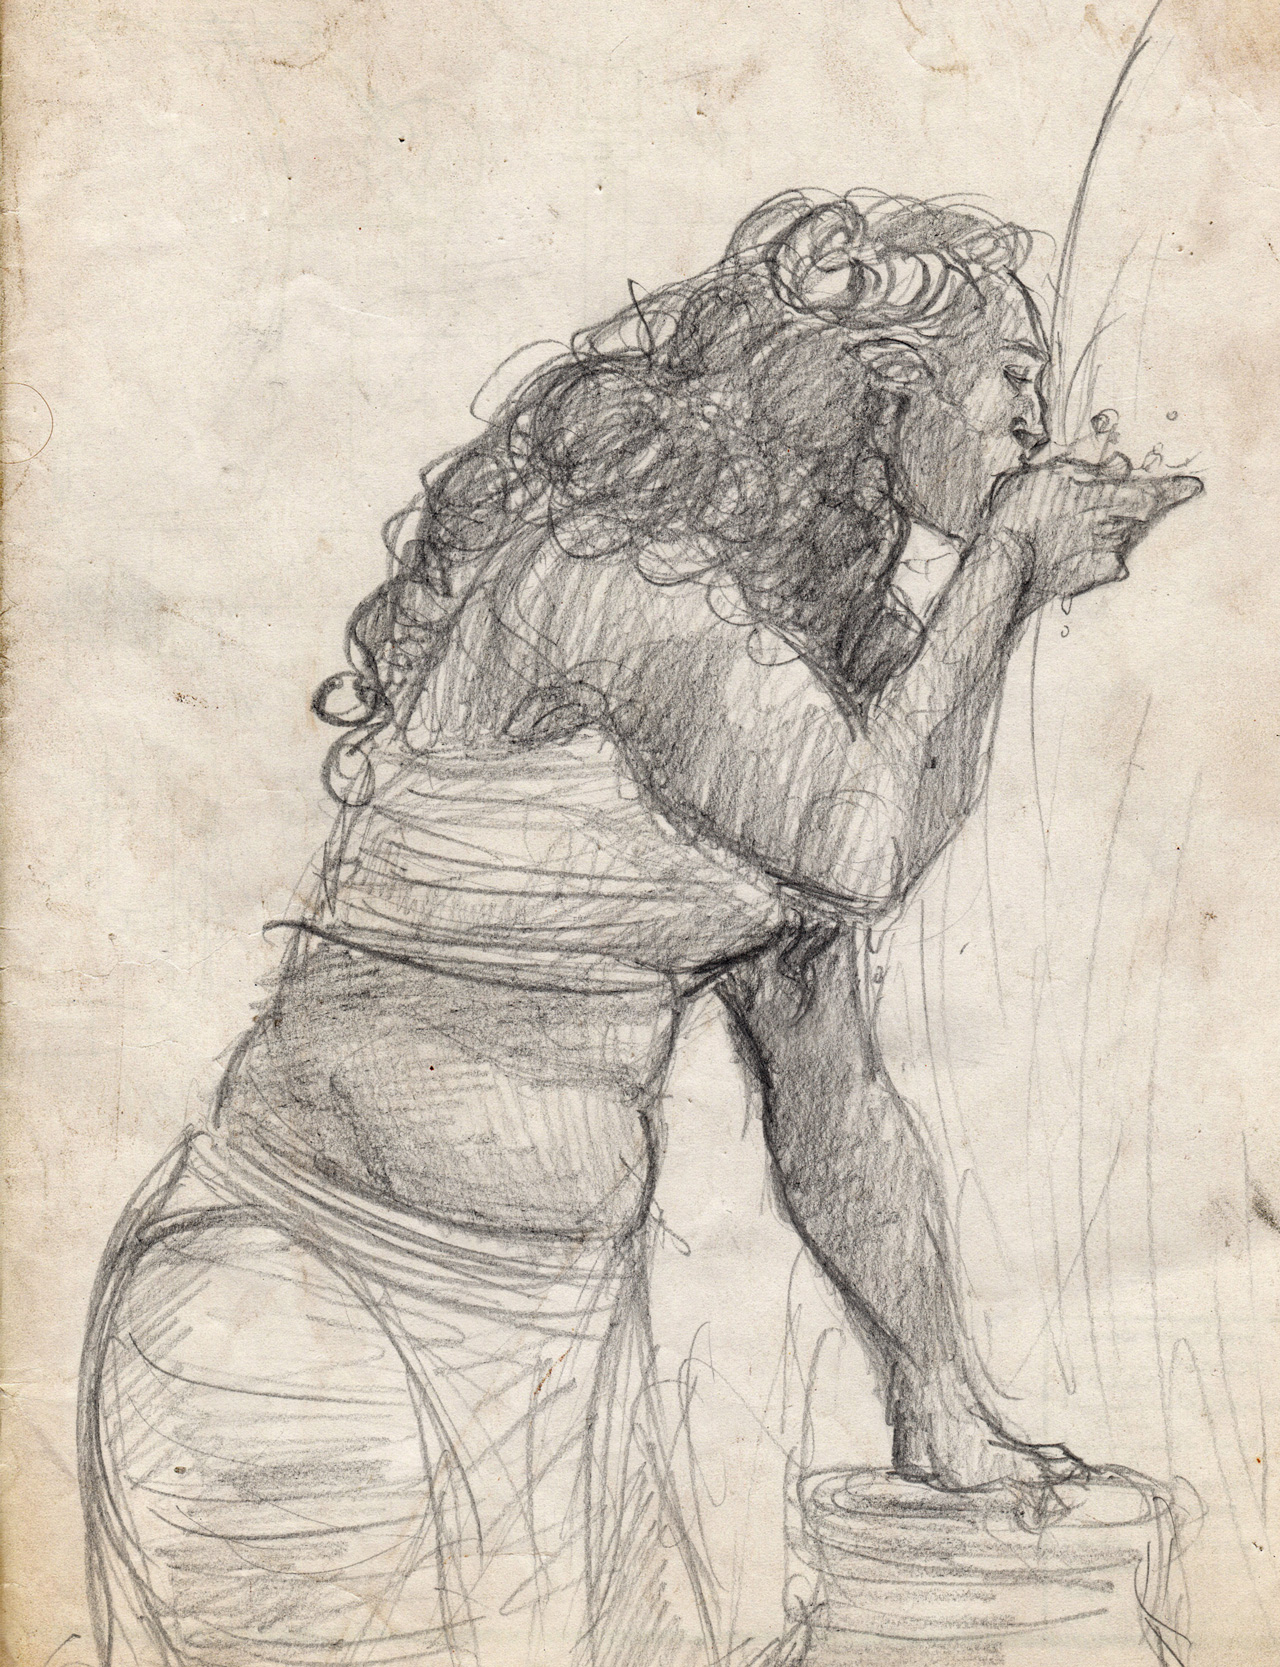 On a weathered piece of paper, Bull has drawn the acolyte drinking water from the fountain. She stands in profile, facing left, and the drawing shows her leaning on a large ceramic jug. One hand is raised to her mouth. Her hair is curly and long, and her eyes are closed.